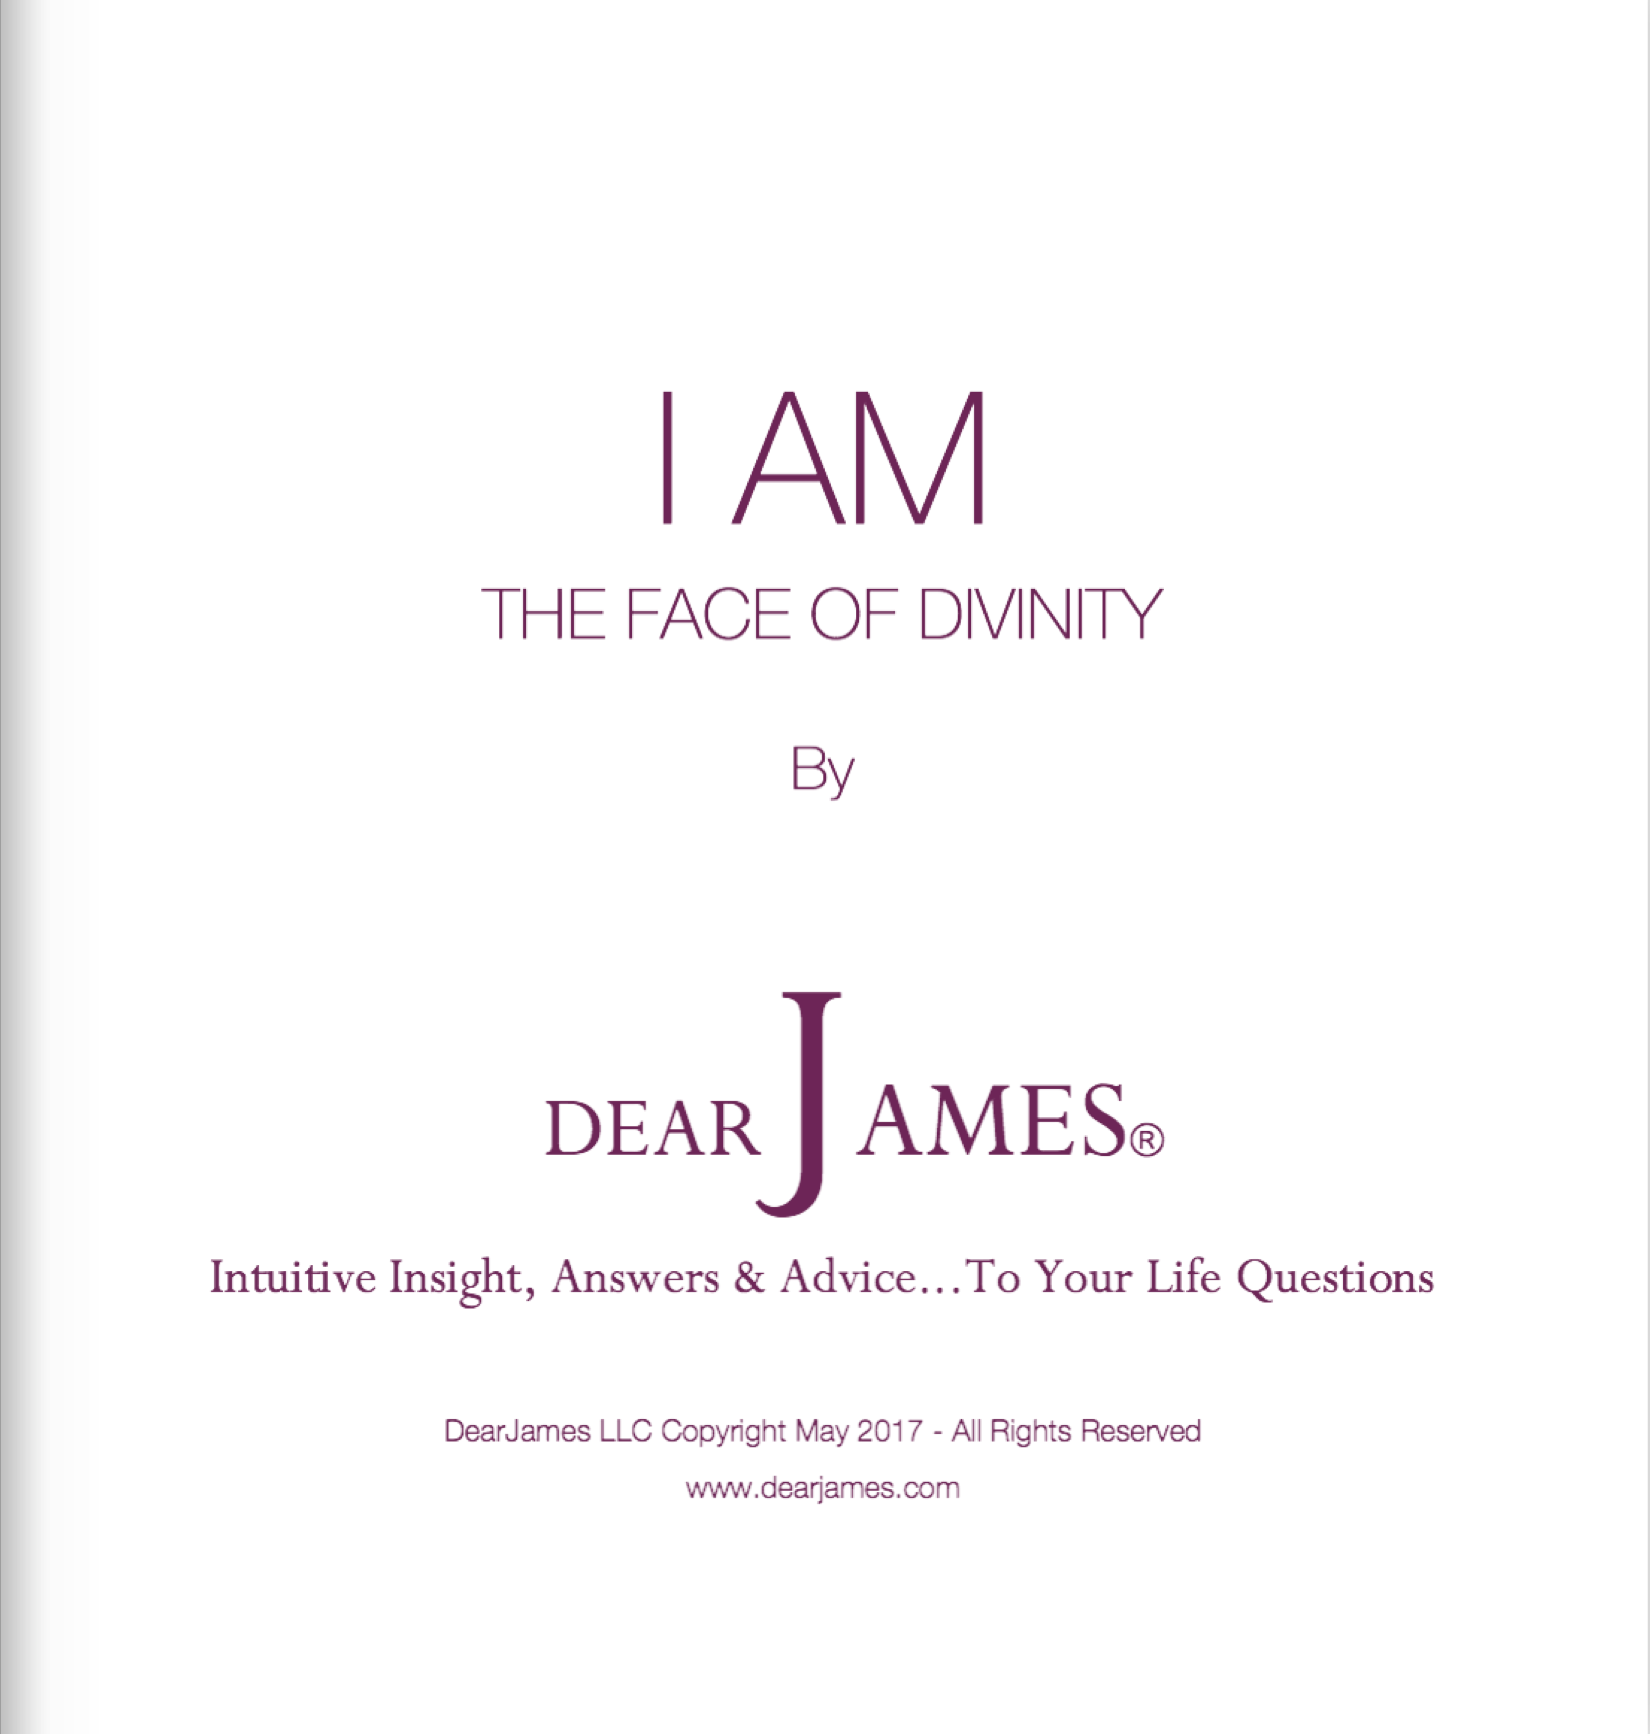 I AM - The Face of Divinity